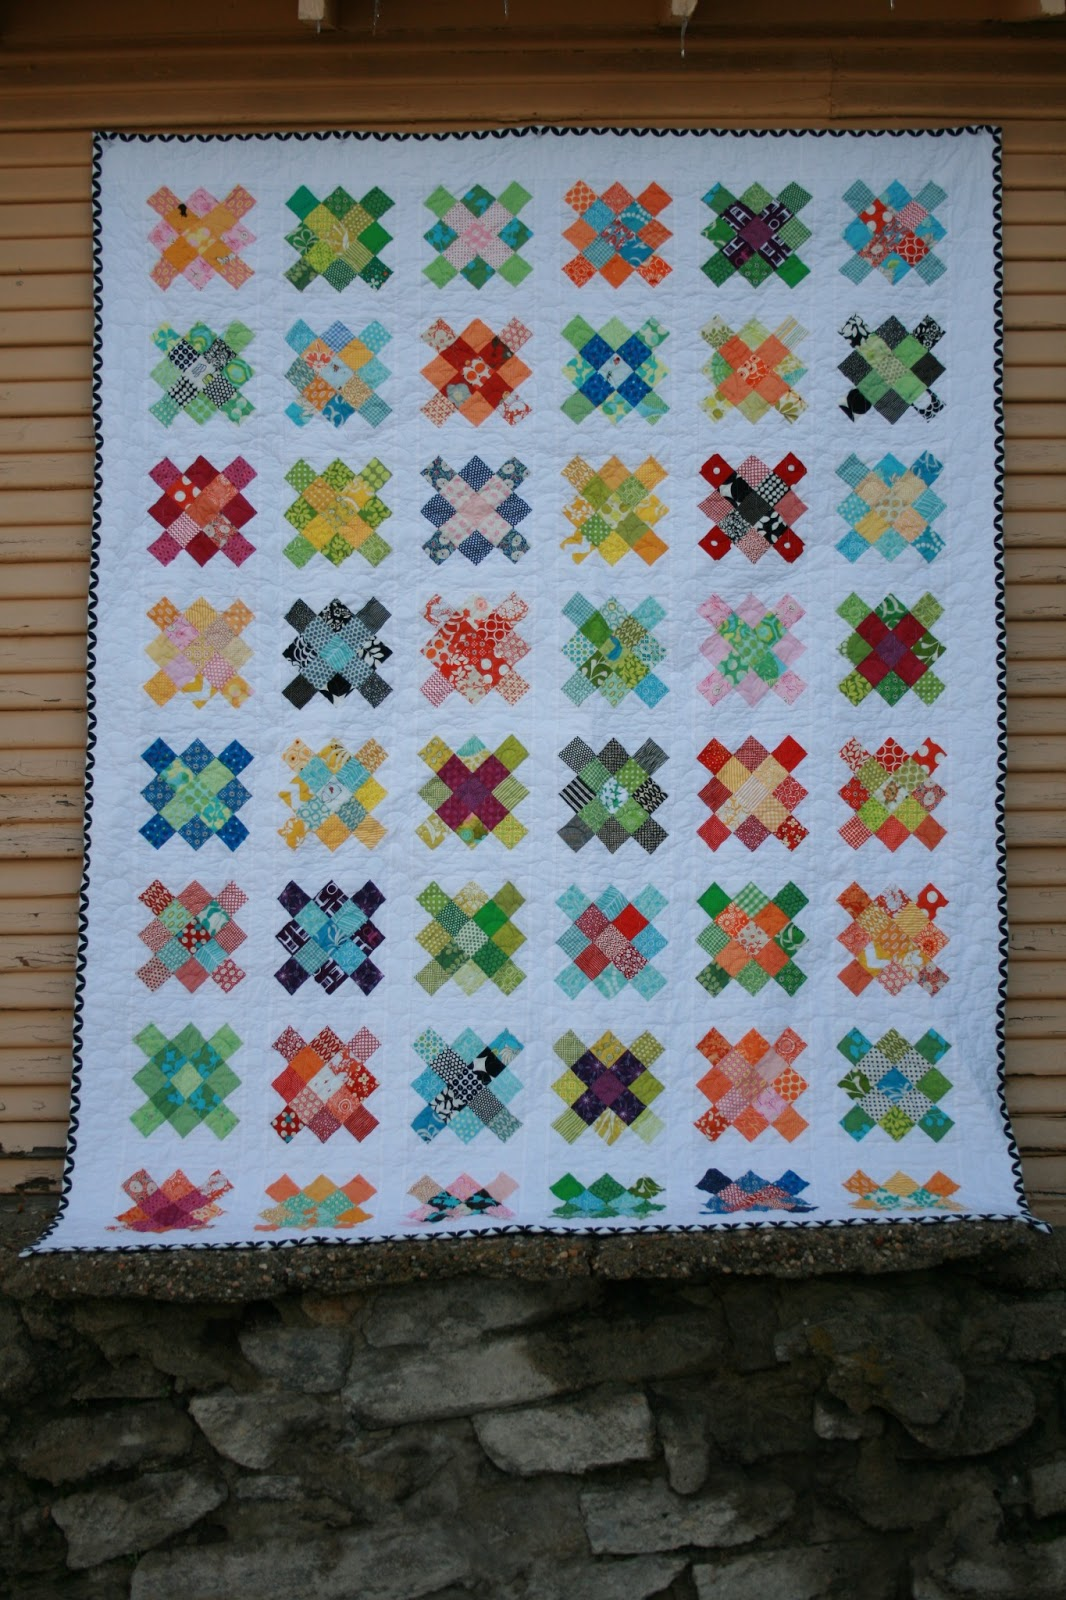 leedle deedle quilts: Granny Square Quilt Finished!